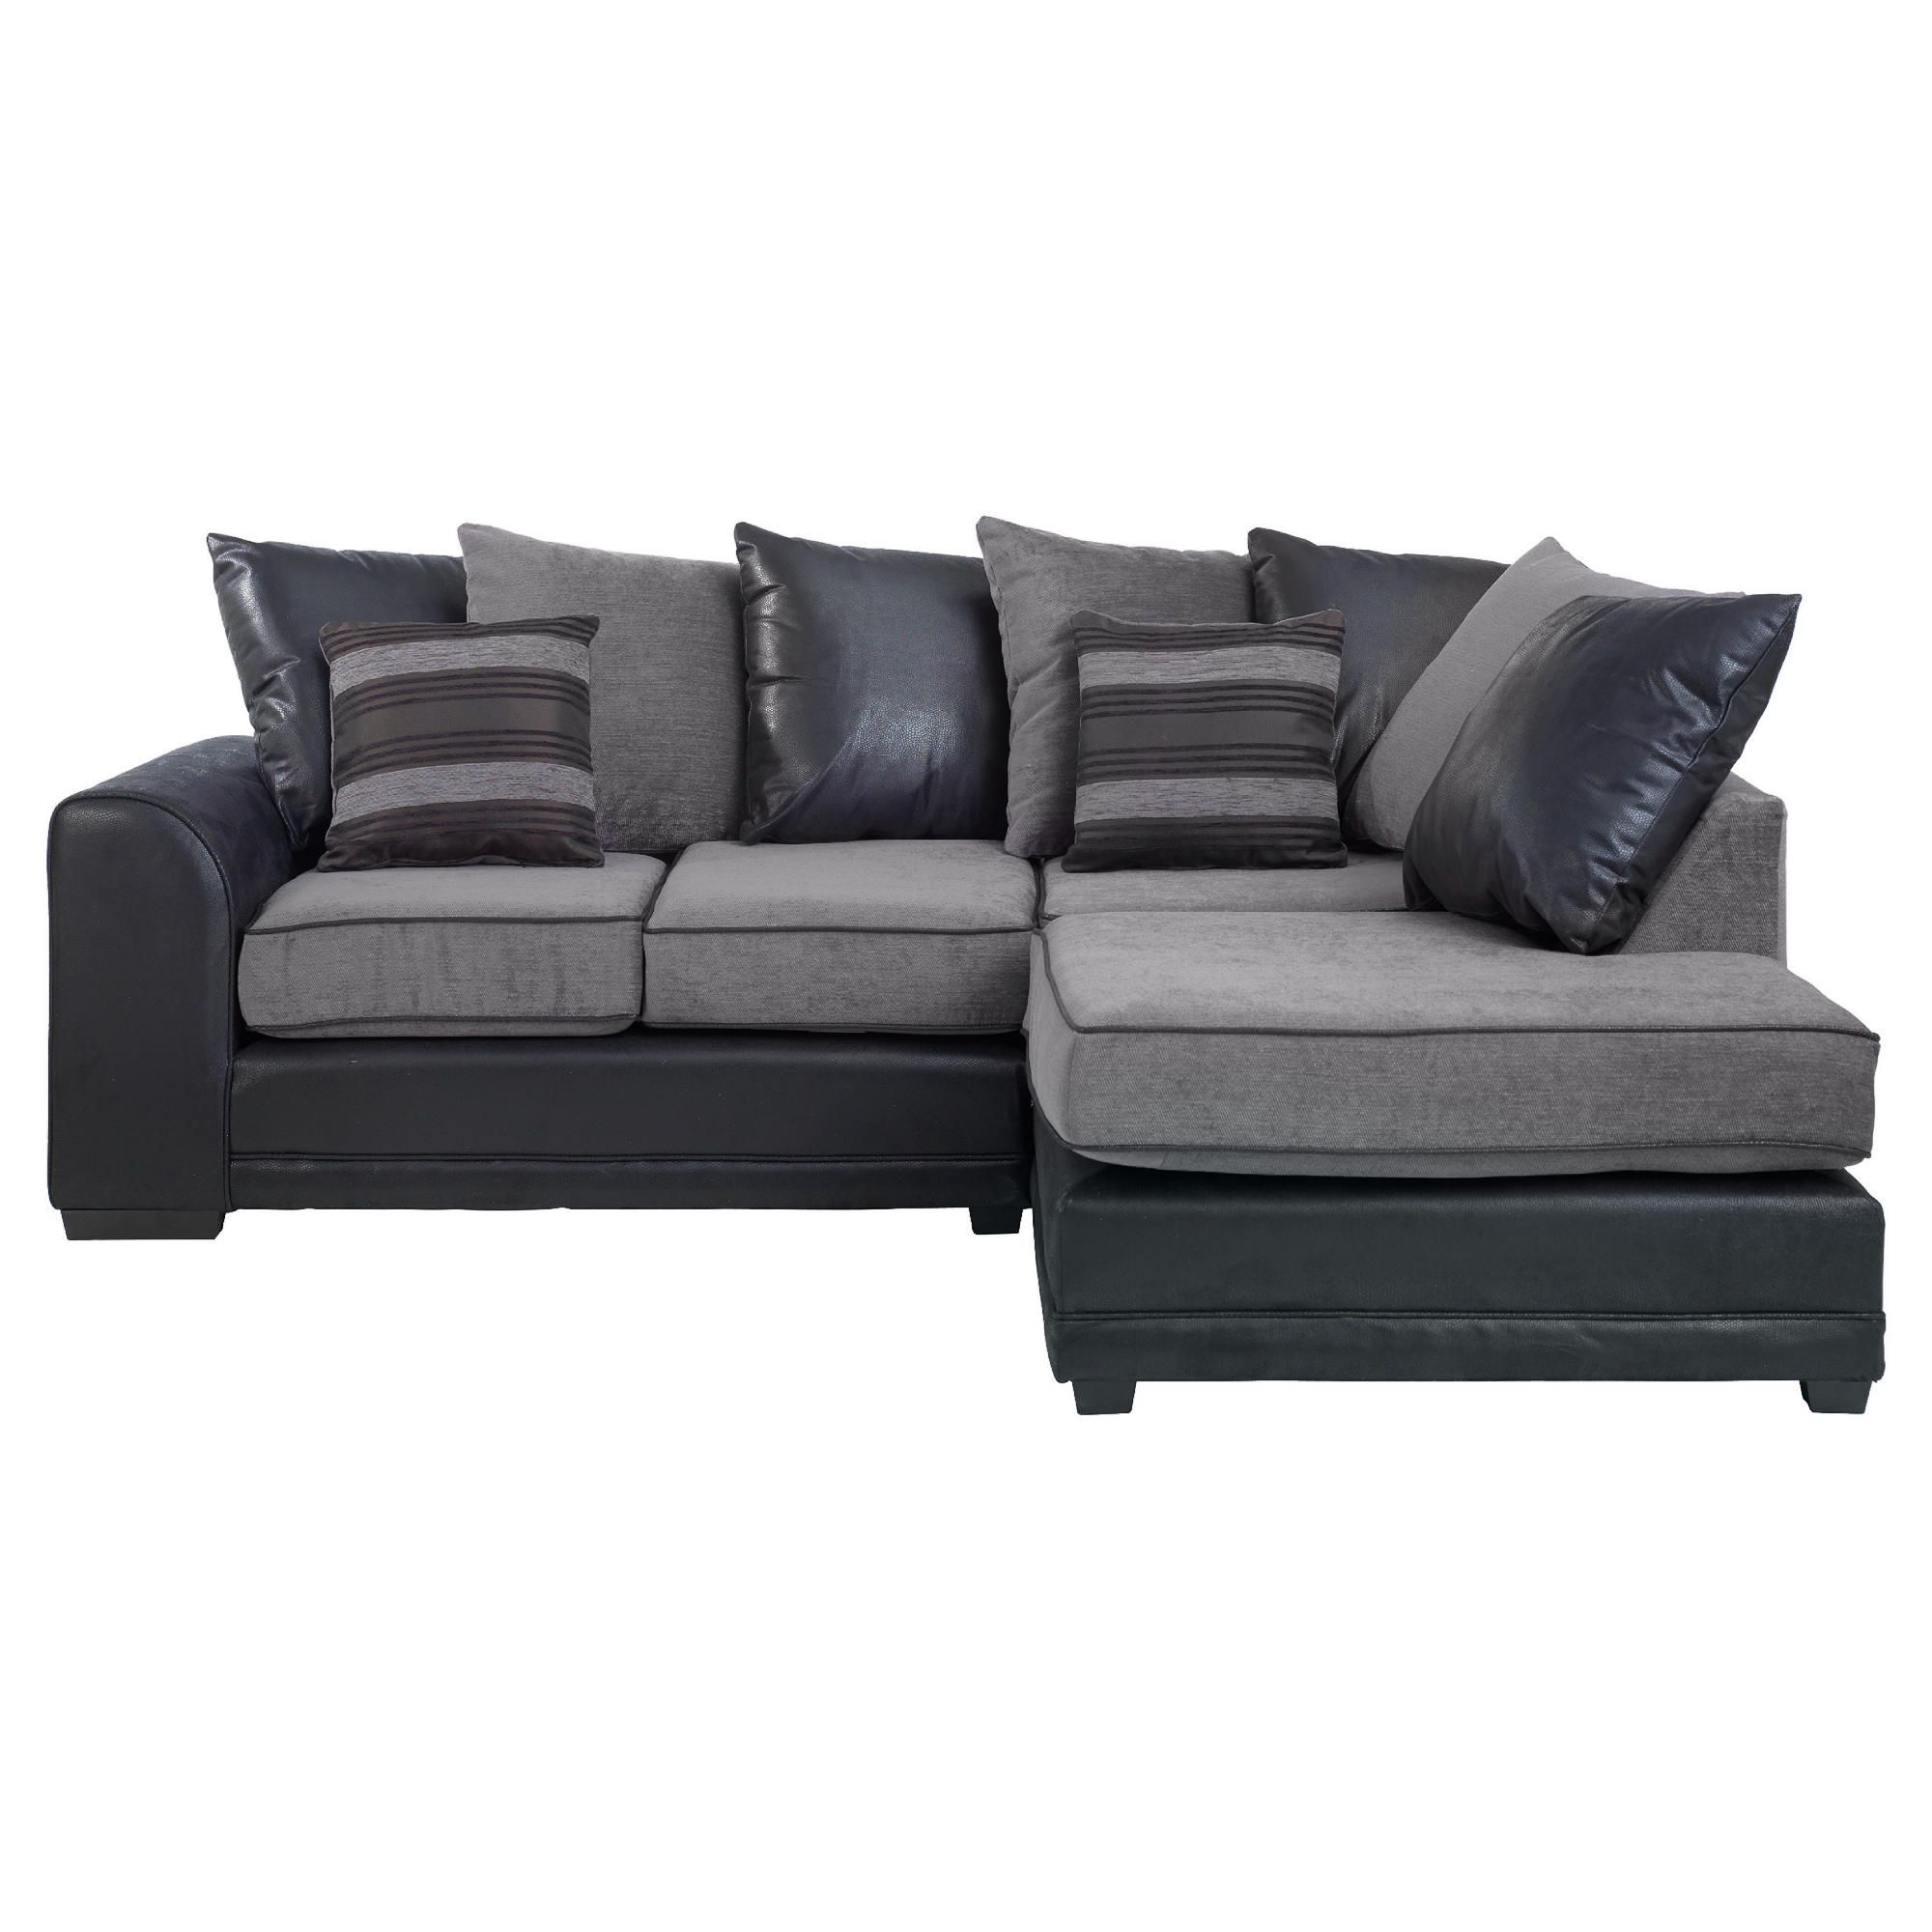 Inca Leather Effect & Fabric Corner Sofa, Charcoal Right Hand Facing at Tesco Direct